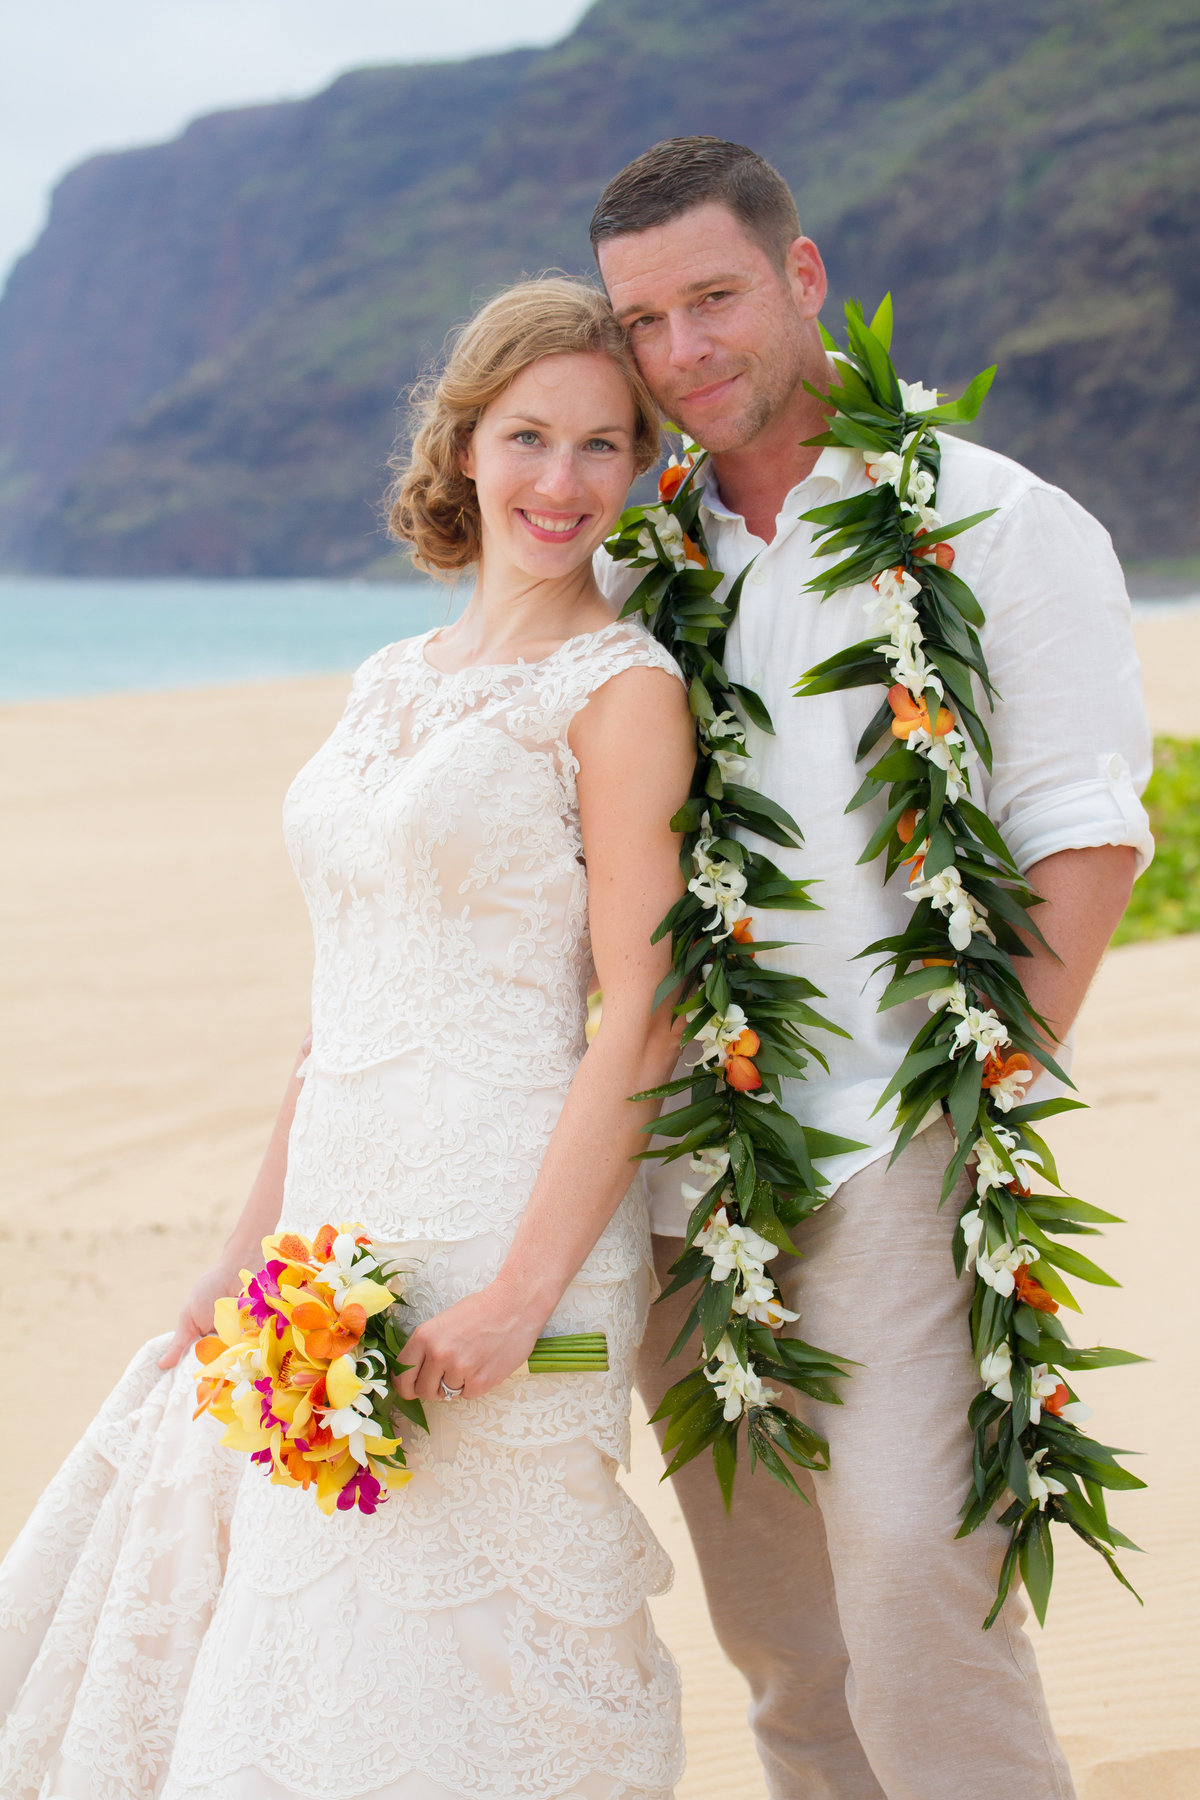 Wedding photos on the beach in Kauai, Hawaii.